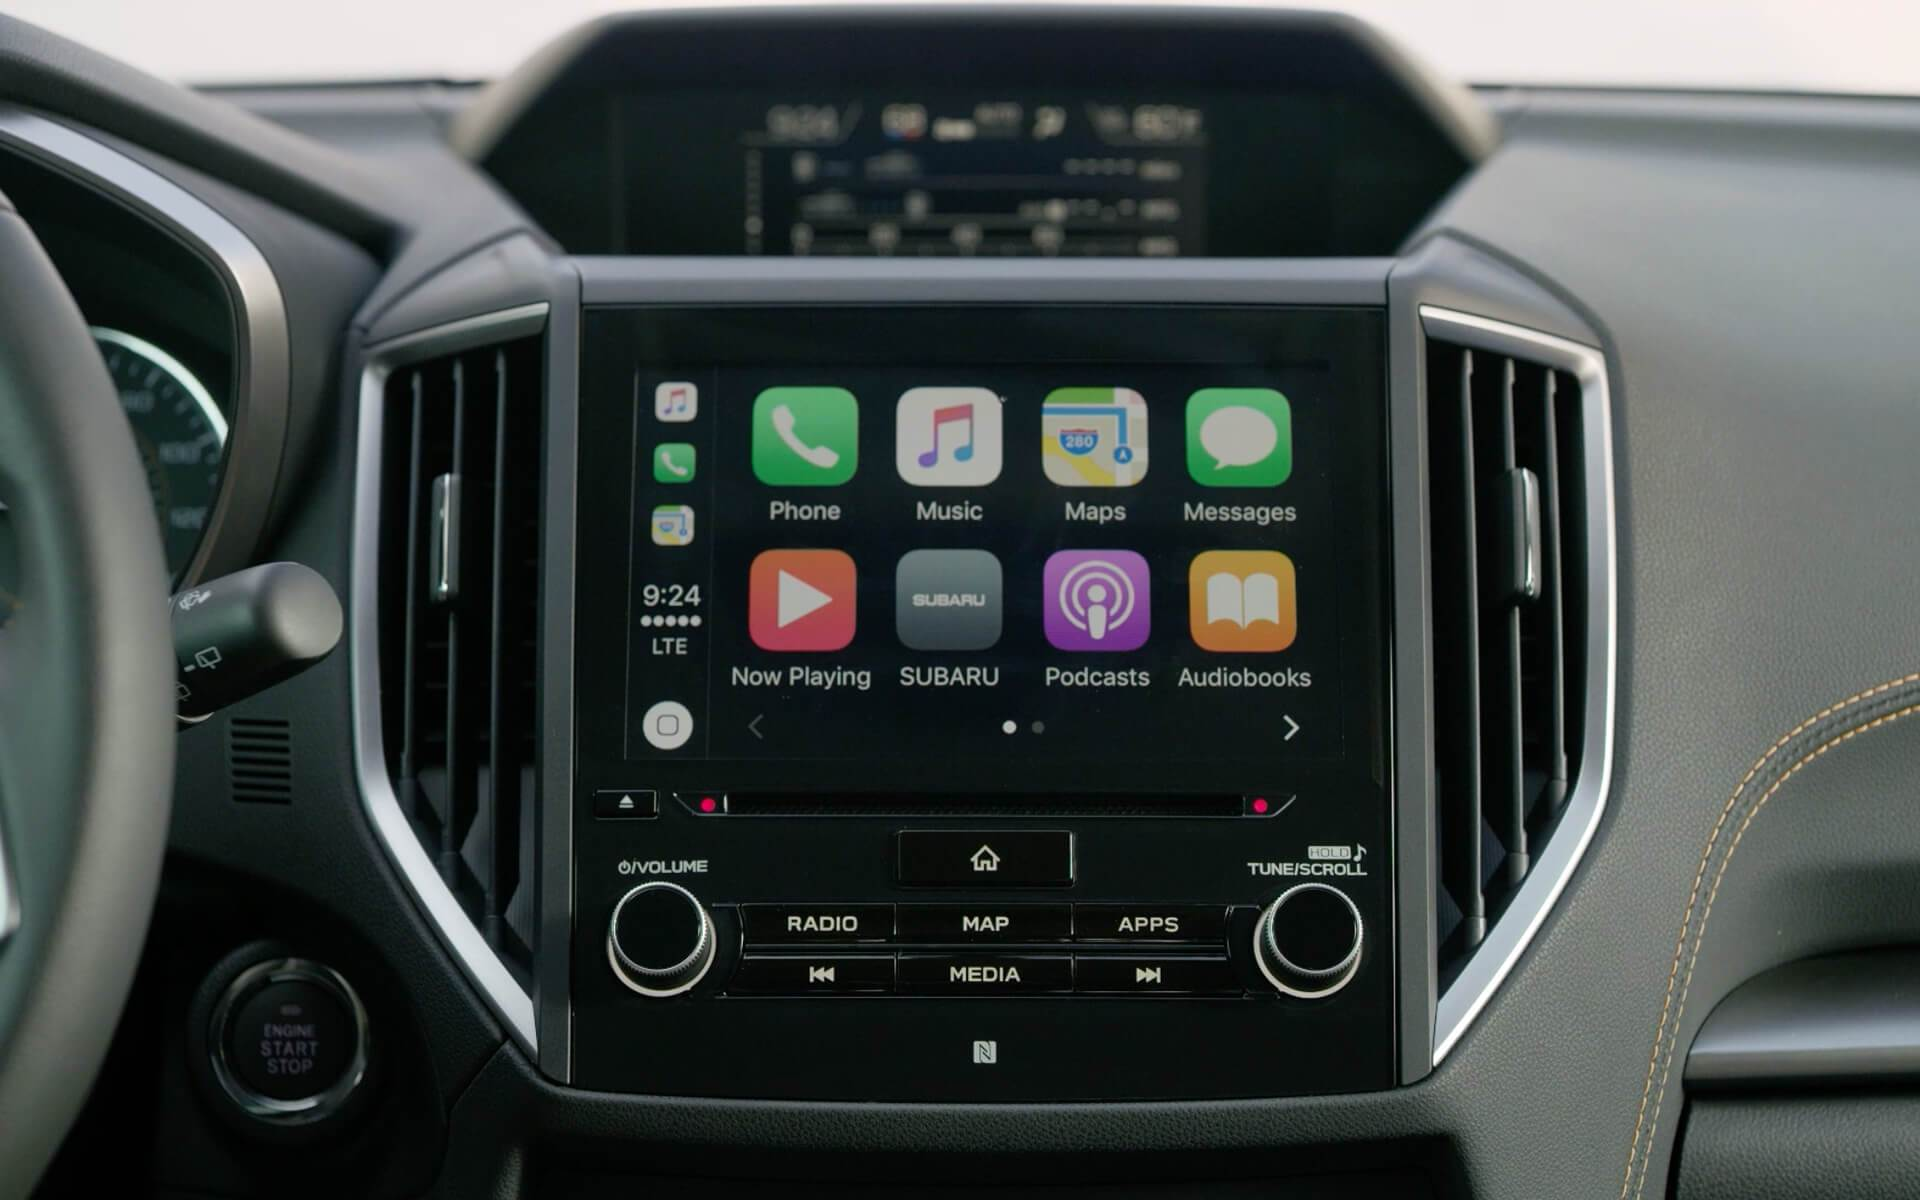 Subaru Apple CarPlay